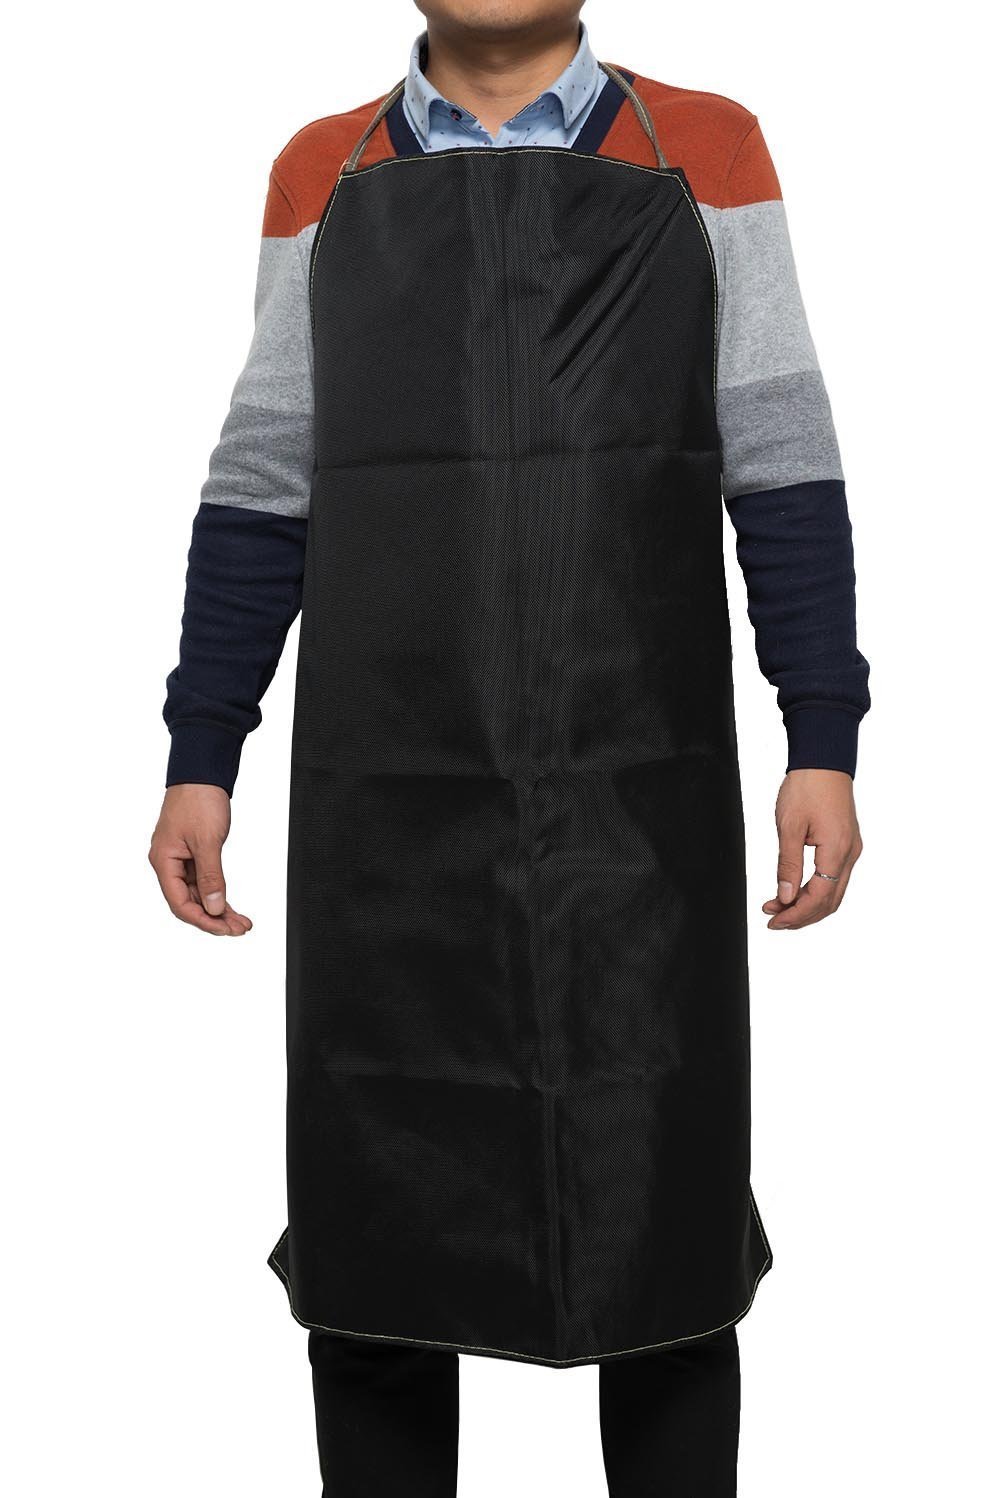 Mufly Long Welding Apron Bib Style Welding Protective Apron Safety Workshop Apron Black (Nomex and KEVLAR)